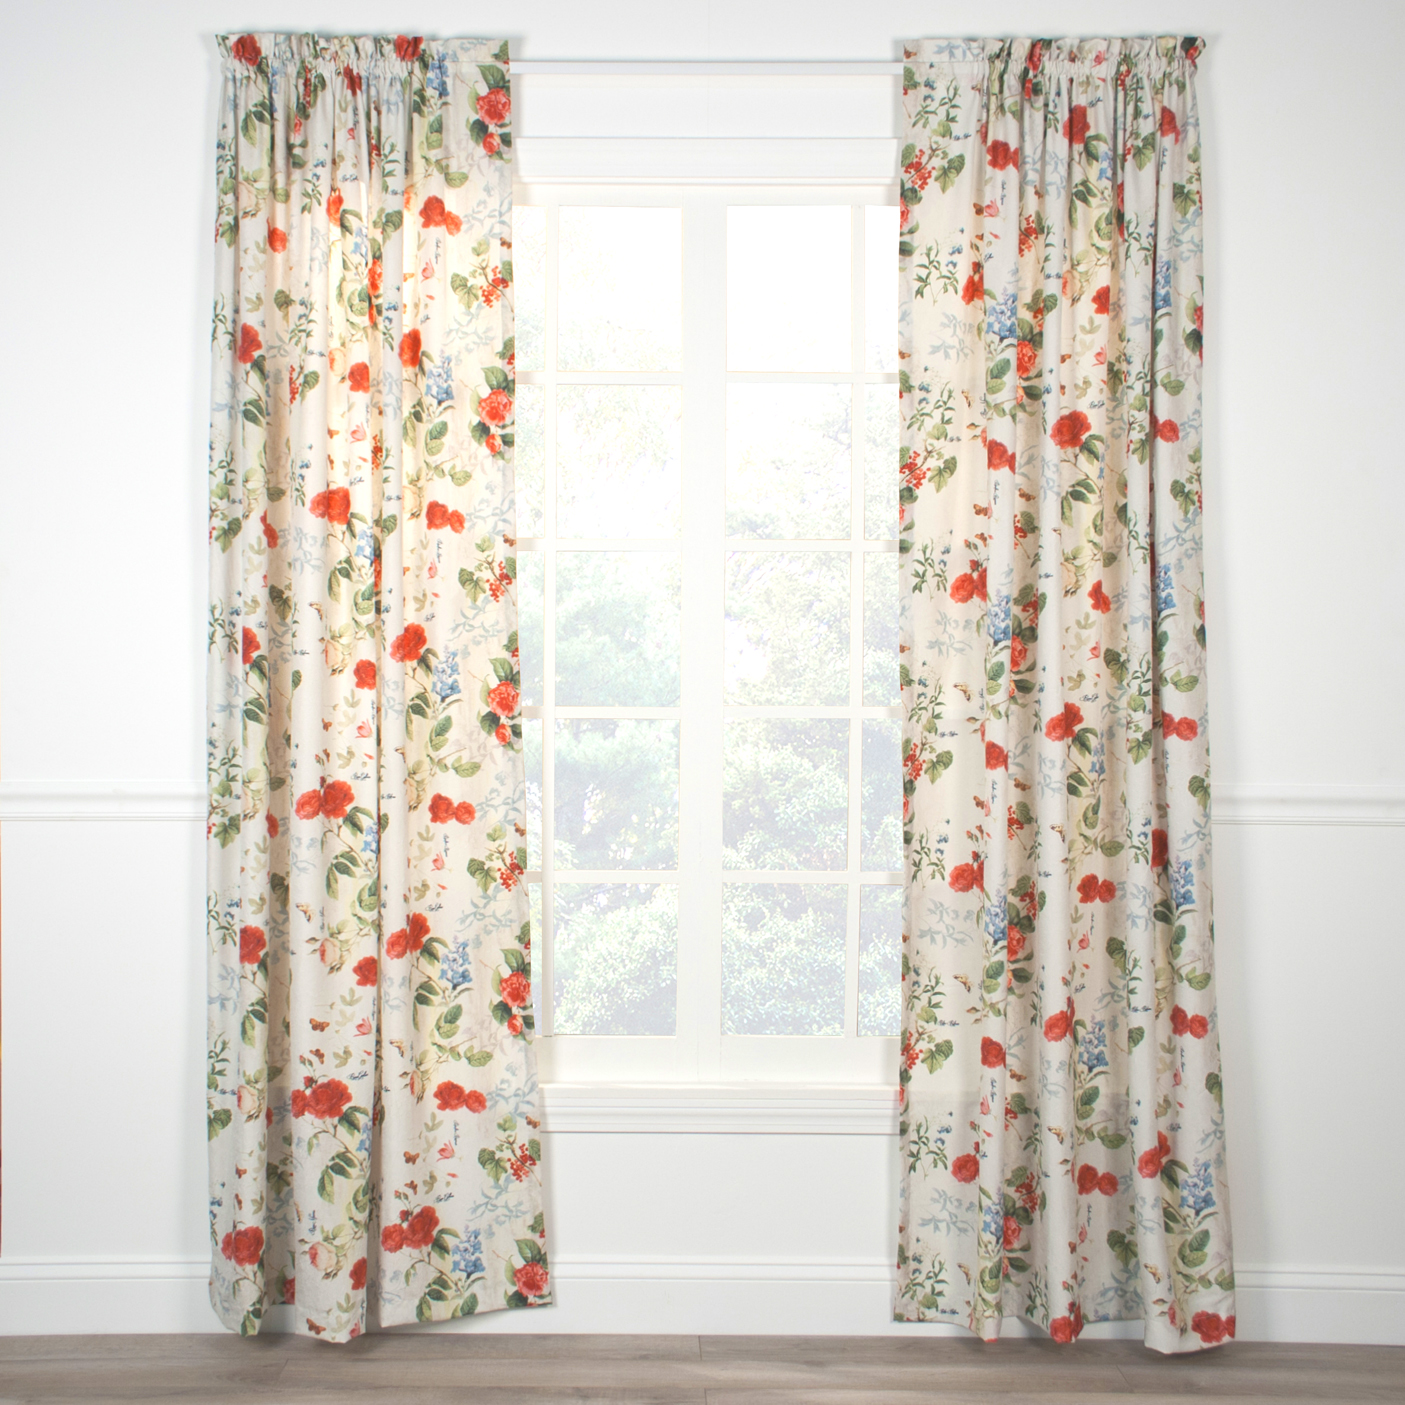 Rod Pocket Curtains - TheCurtainShop.com